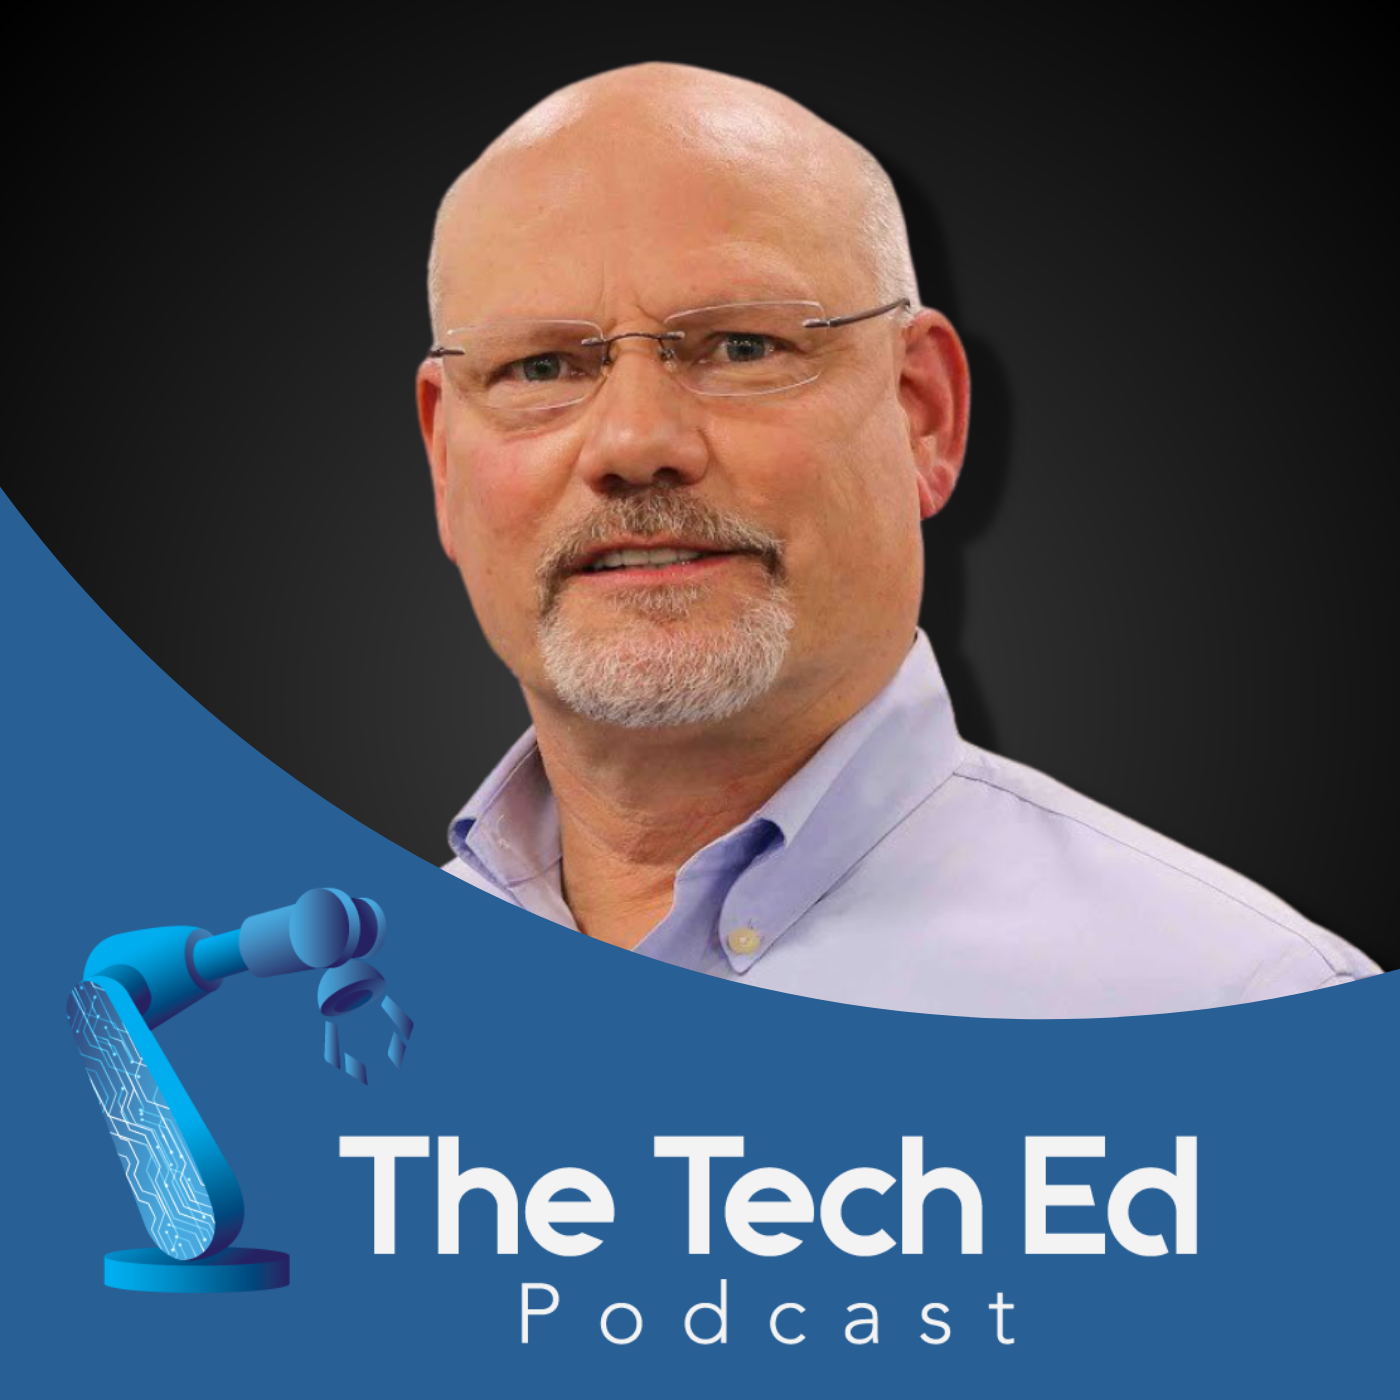 Mike Reader on The TechEd Podcast